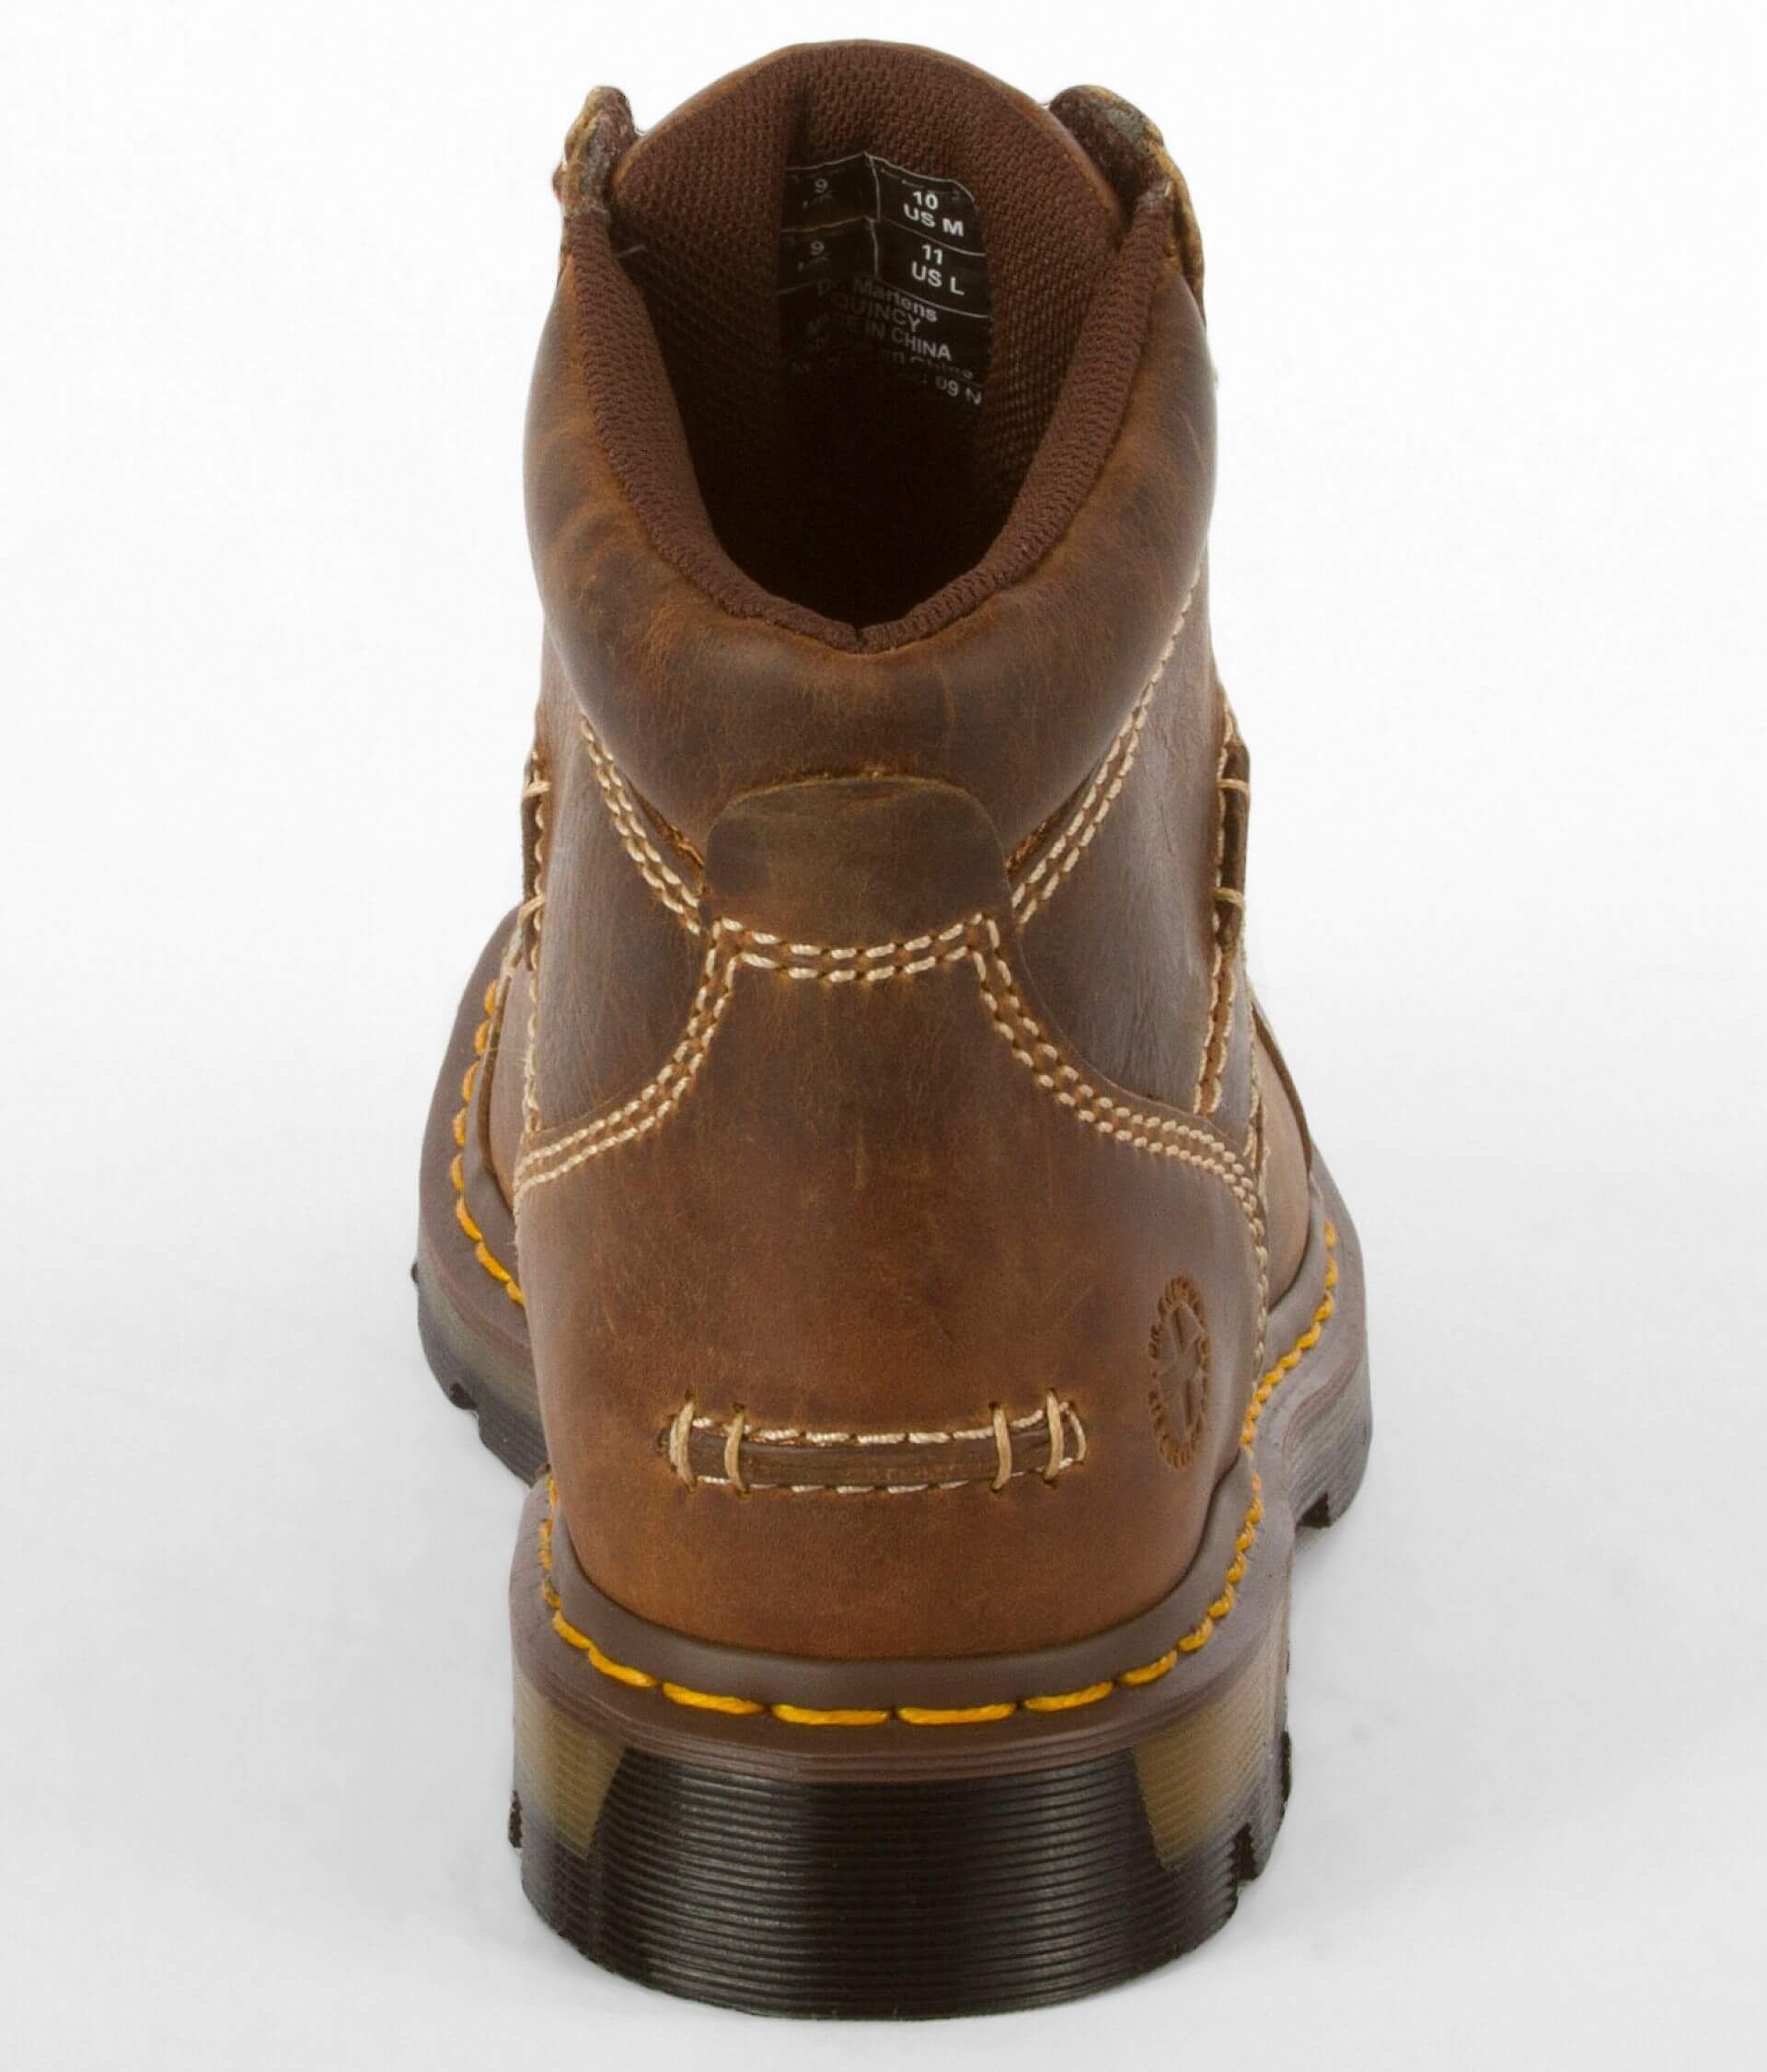 e3baf814149 Dr. Martens Quincy Leather Boot - Men's Shoes in Tan Greenland | Buckle